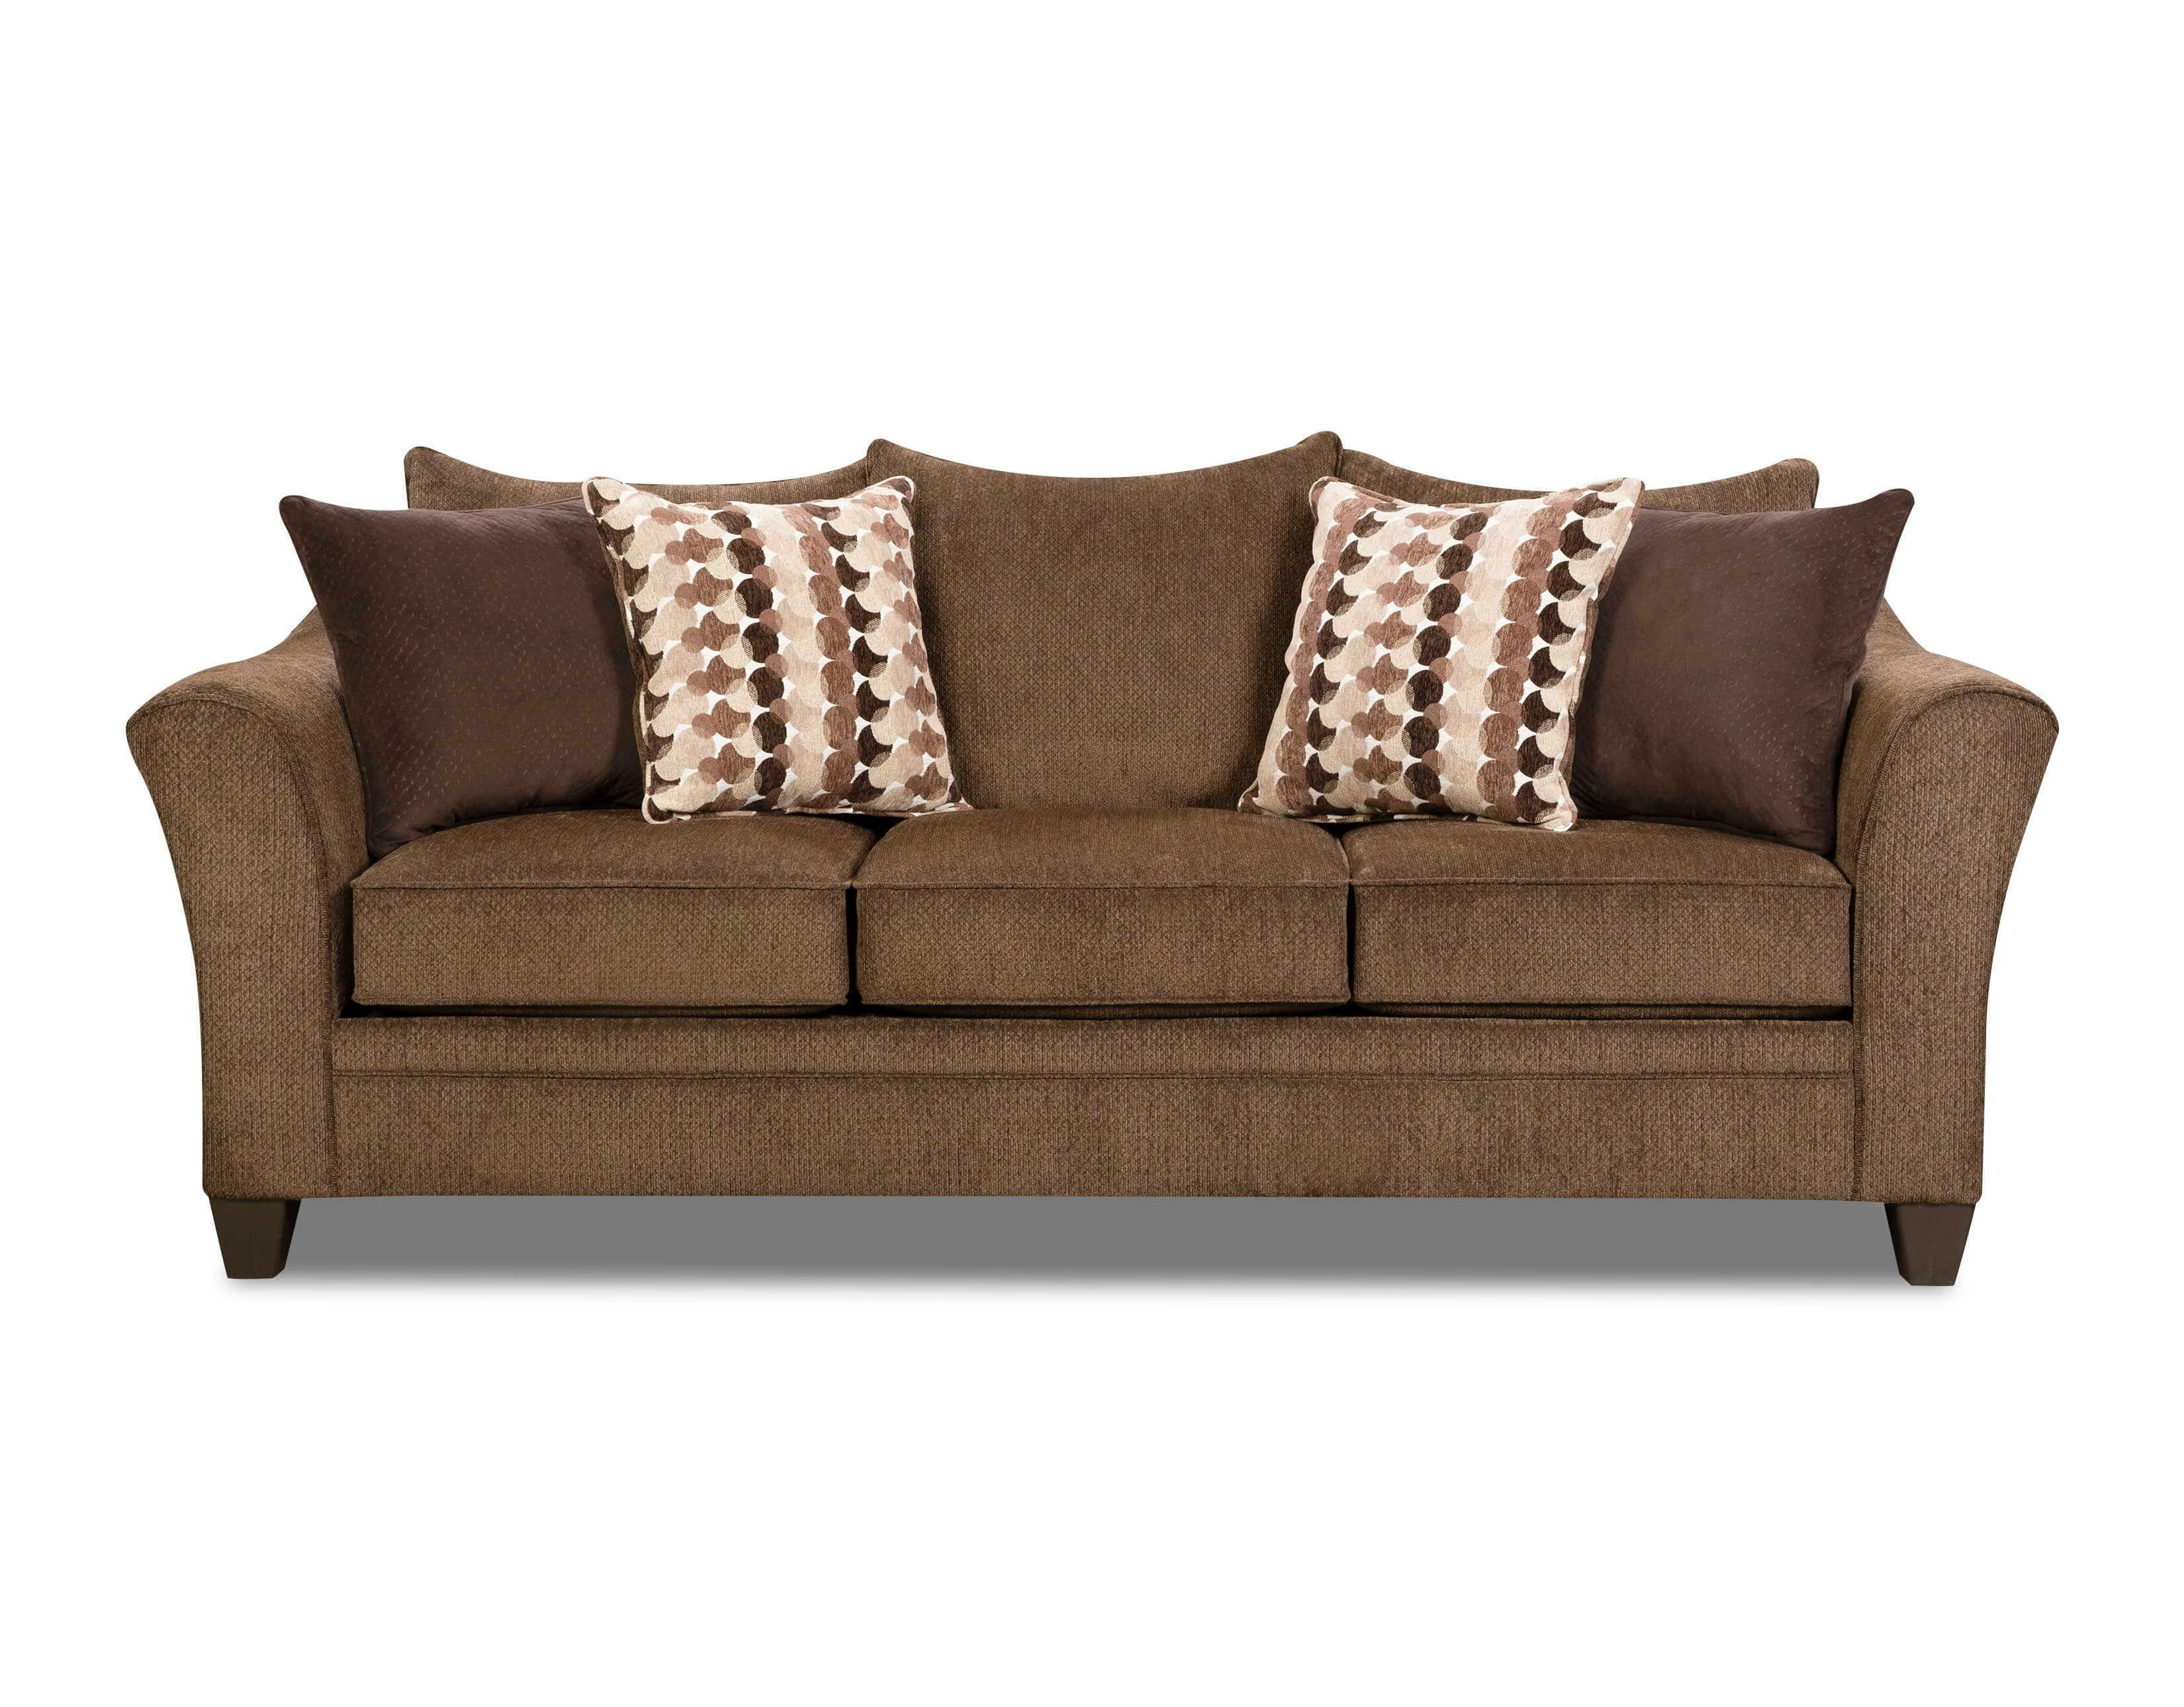 8642 transitional sectional sofa with chaise by albany chair single fusion platinum great american